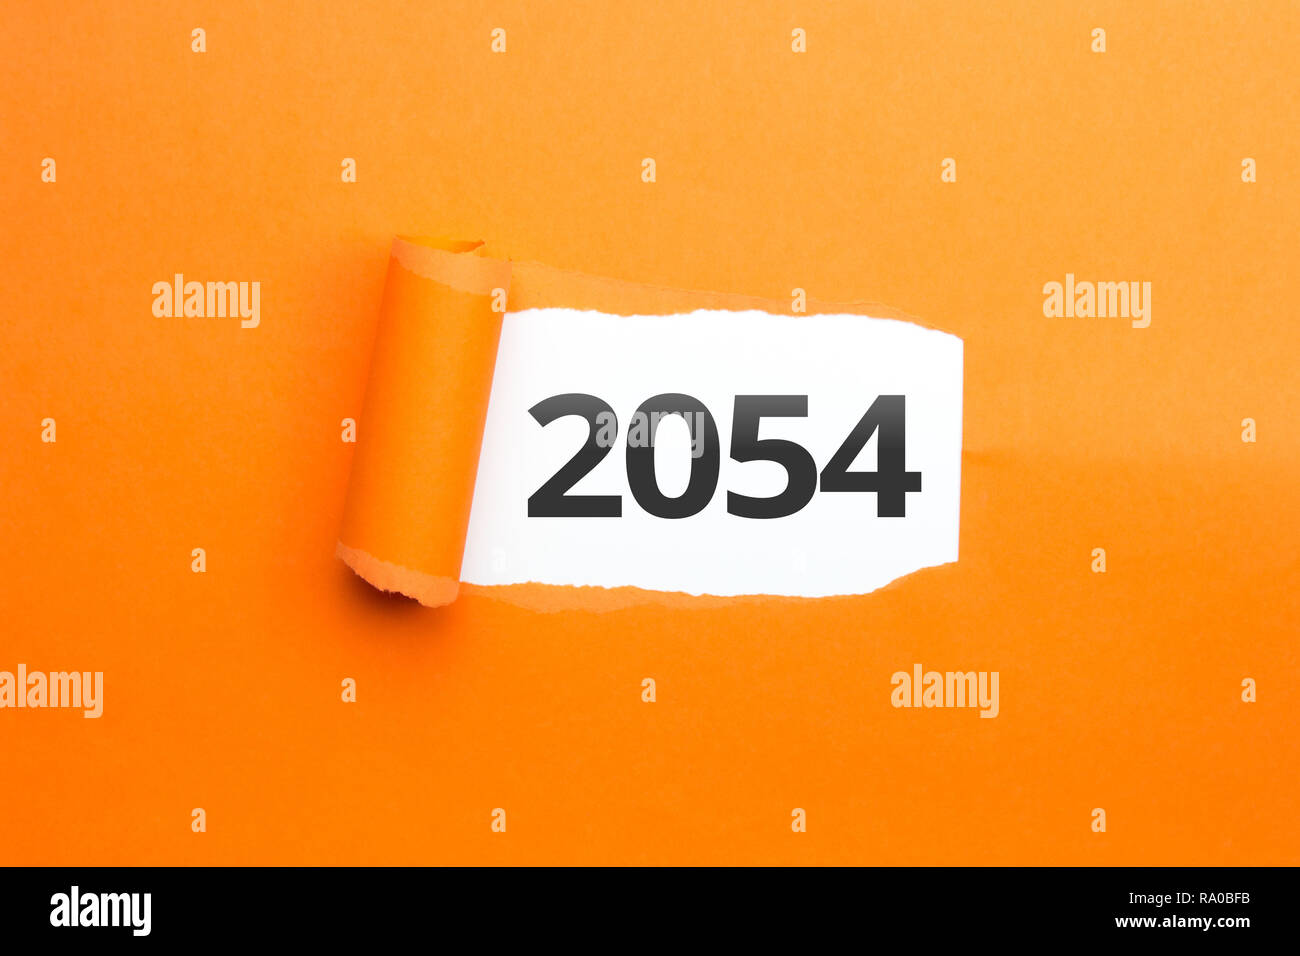 surprising Number / Year 2054 orange background - Stock Image